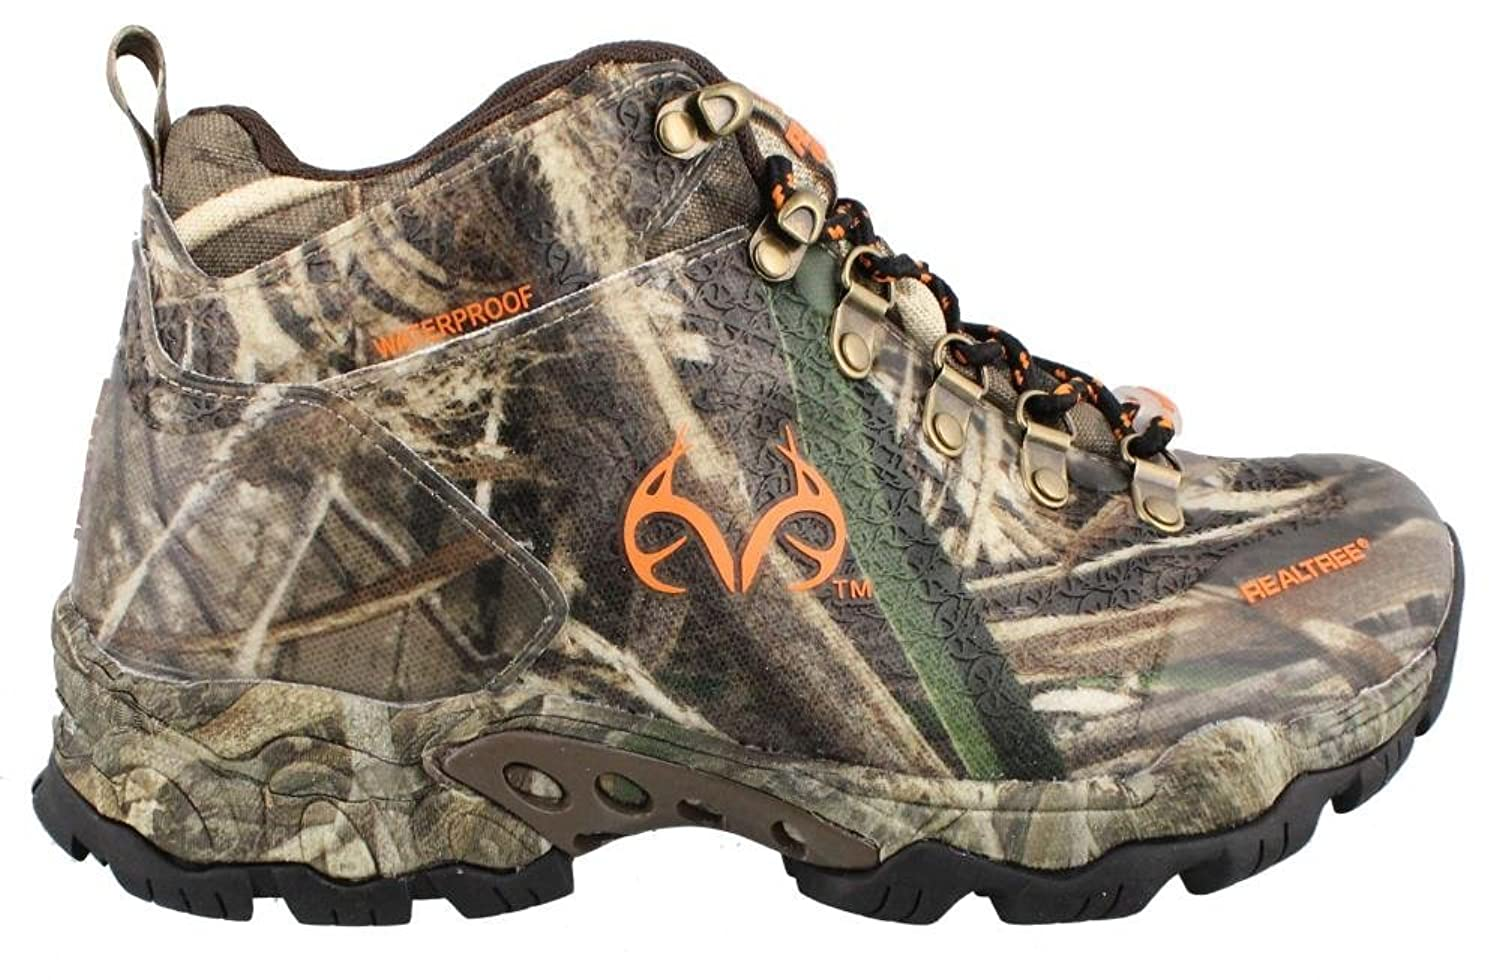 Men's Realtree Outfitters, Yukon Waterproof Hiking Shoes